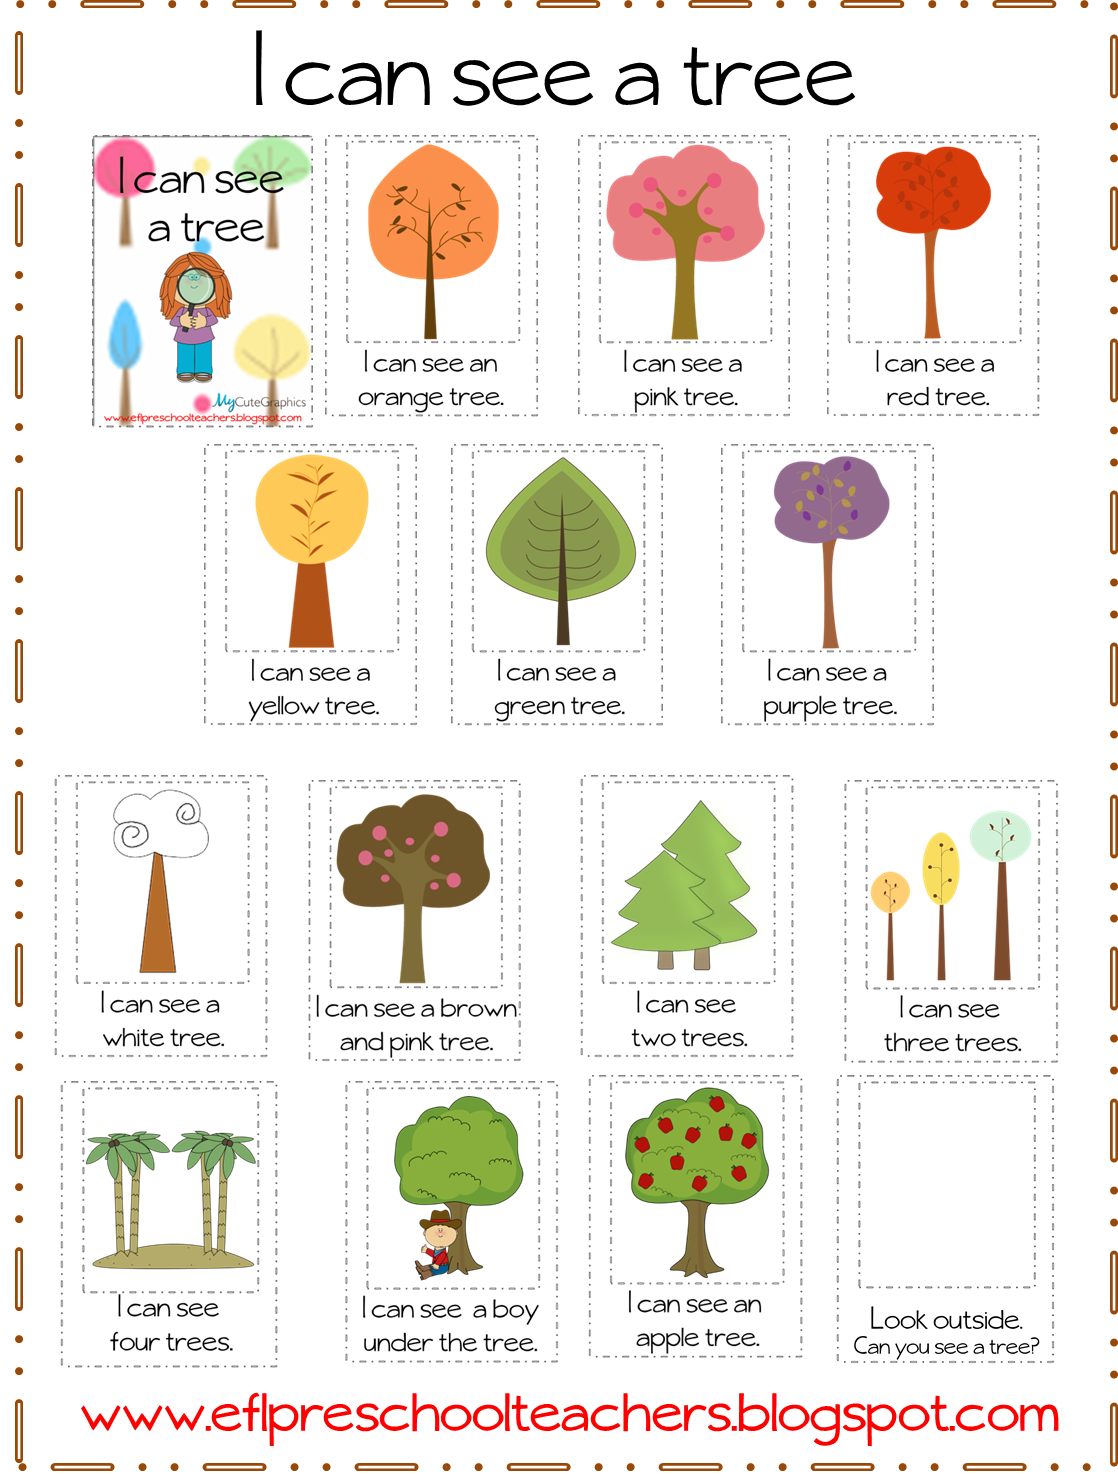 Esl Efl Preschool Teachers Trees